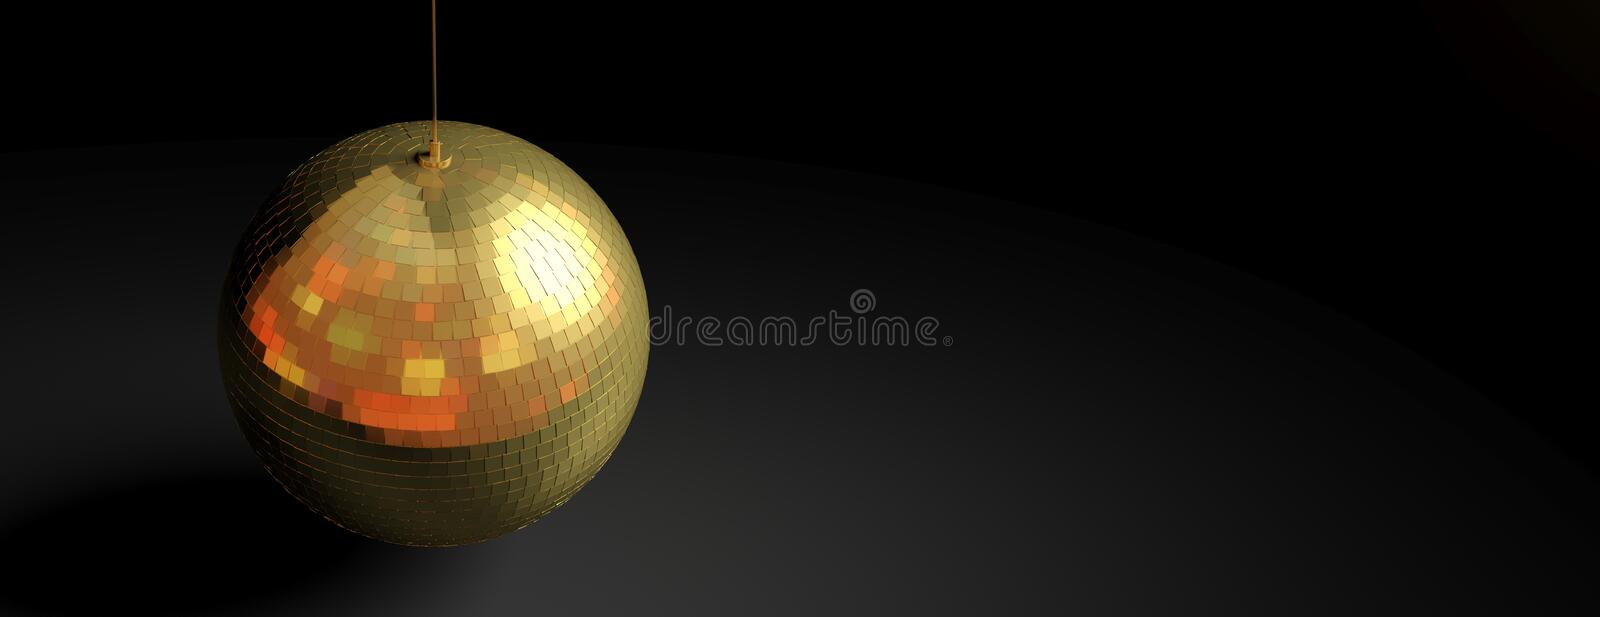 Gold mirror disco ball isolated in a black background, banner, copy space. 3d illustration stock illustration